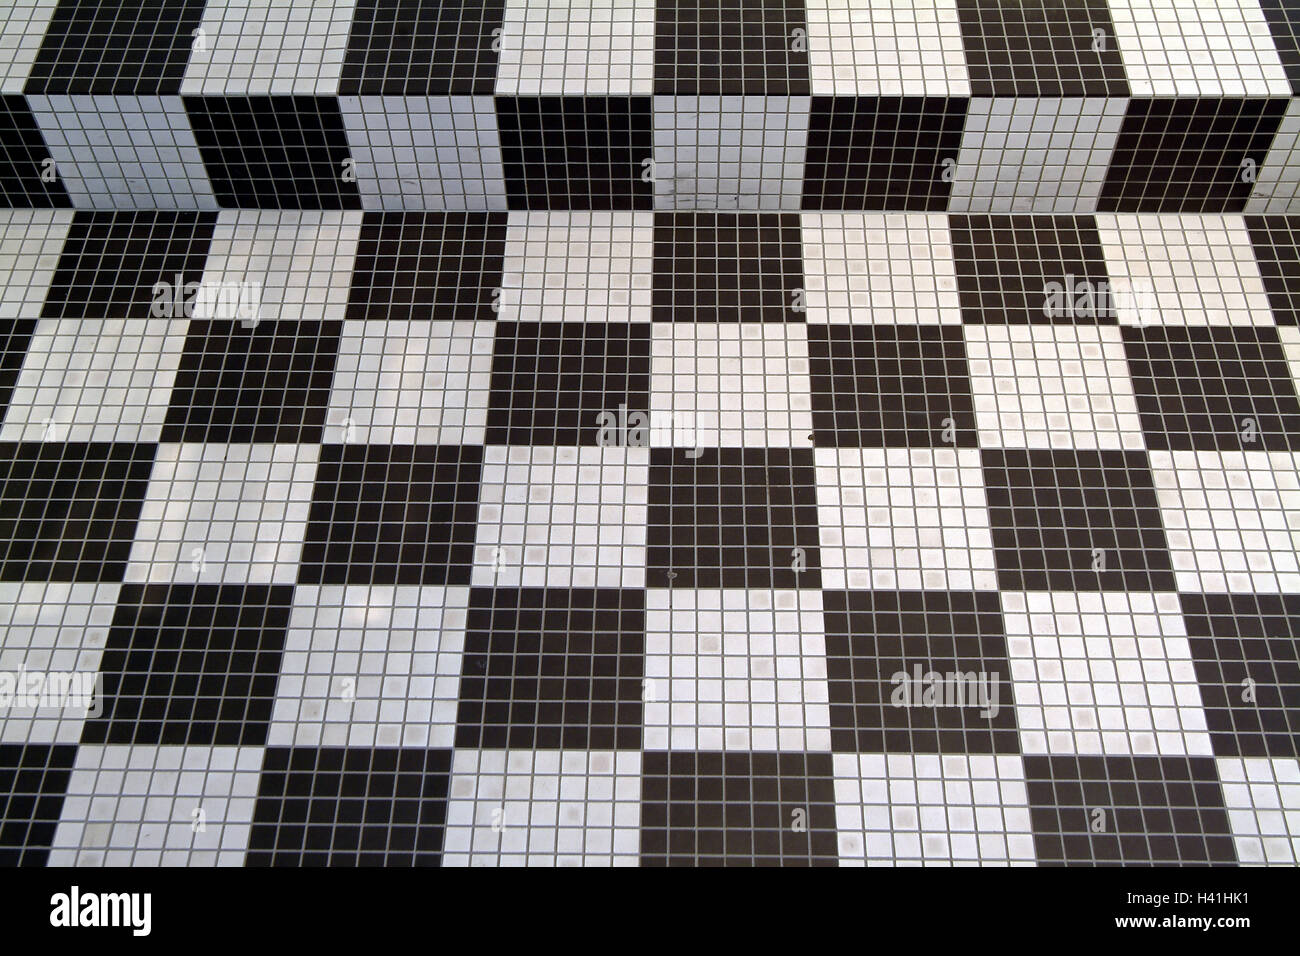 Black And White Tiled Floor Stock Photos Black And White Tiled